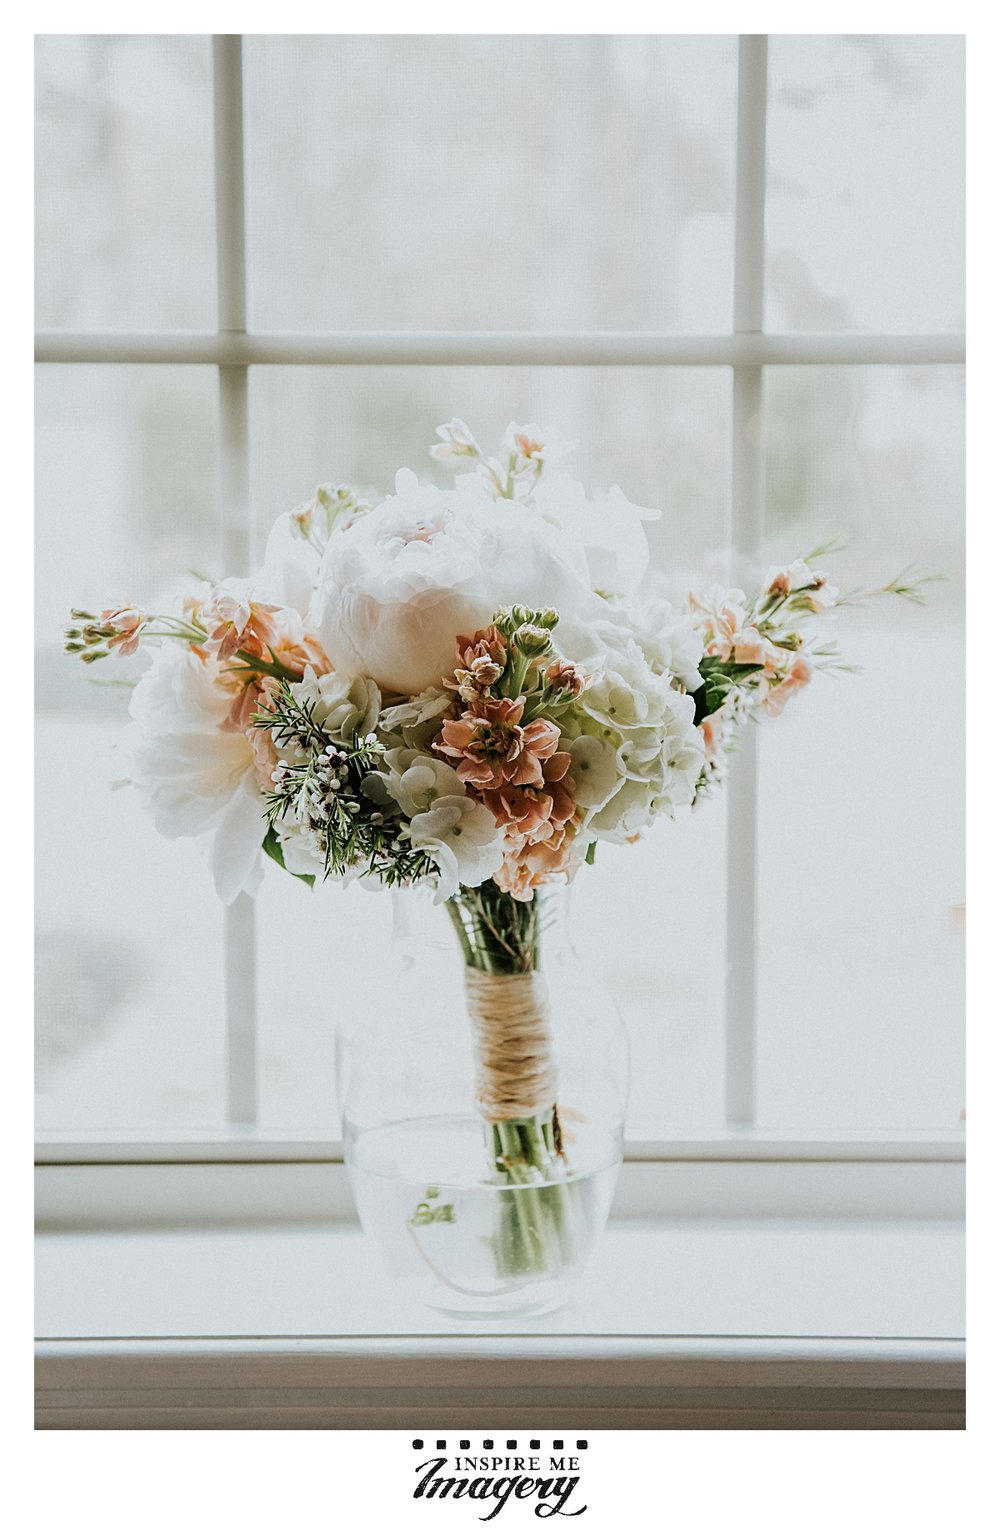 Loving the gorgeous tones in this bridal bouquet.